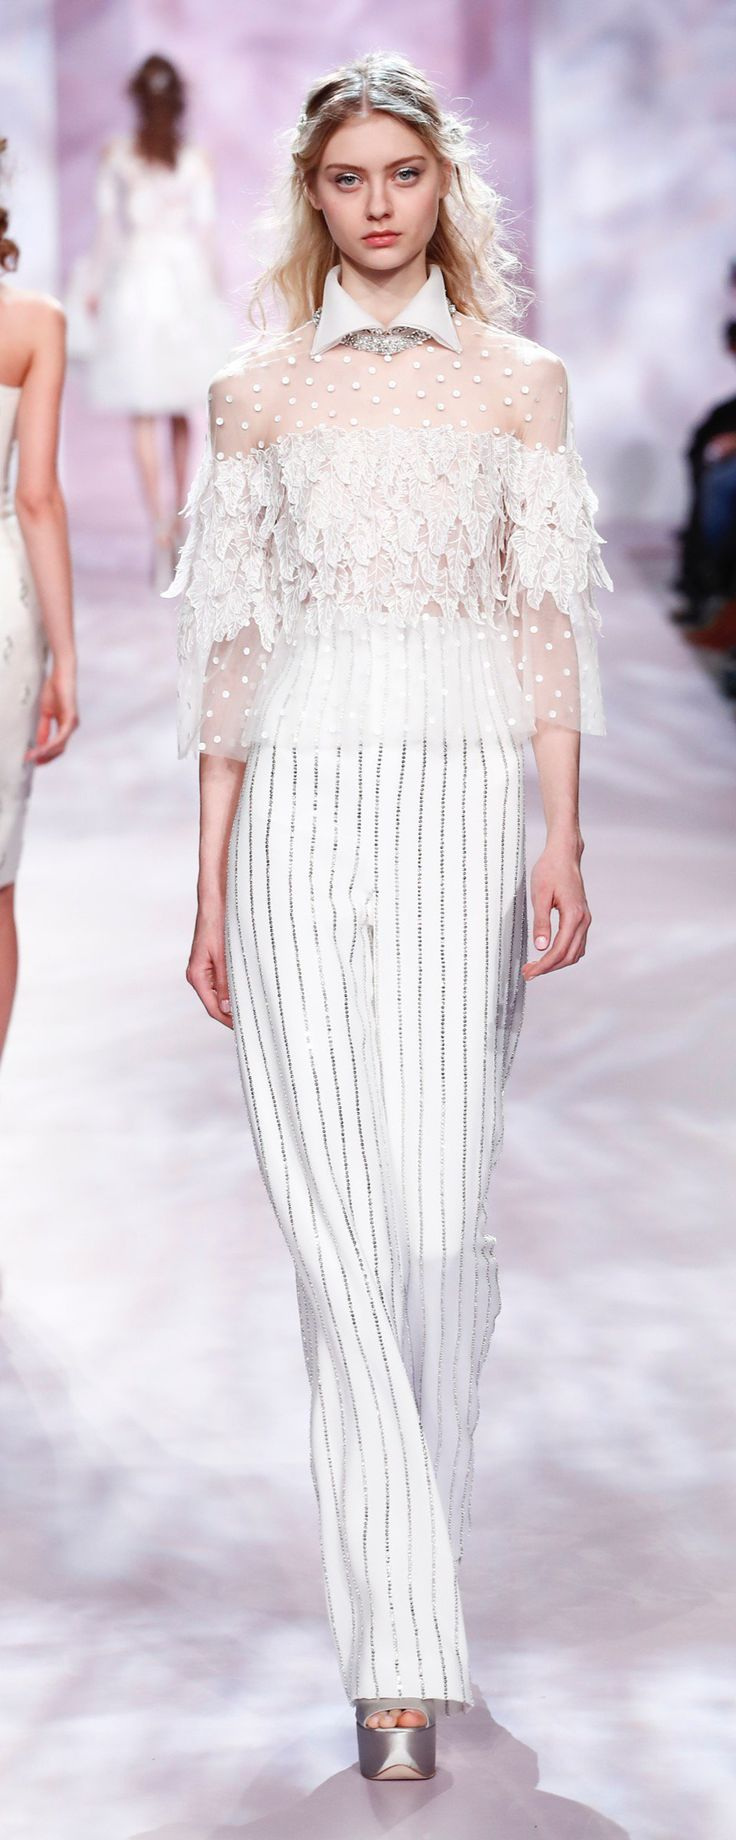 Georges Chakra İ/Y 2017, Resmi resimler - Haute couture - http://tr.orientpalms.com/Georges-Chakra-6558